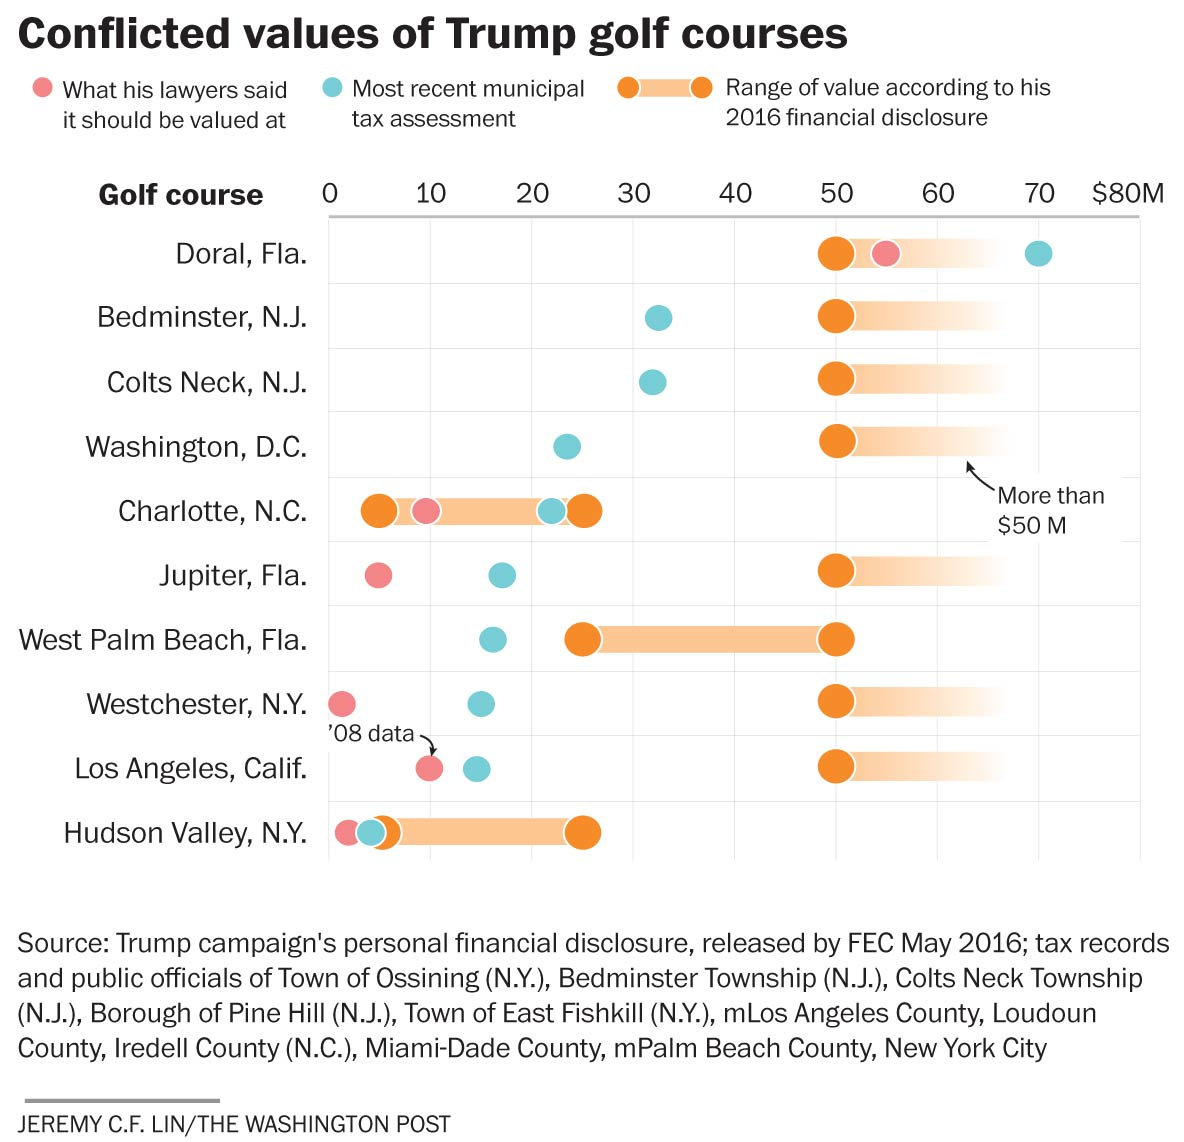 Trump Claims His Golf Courses Are Worth Tens Of Millions